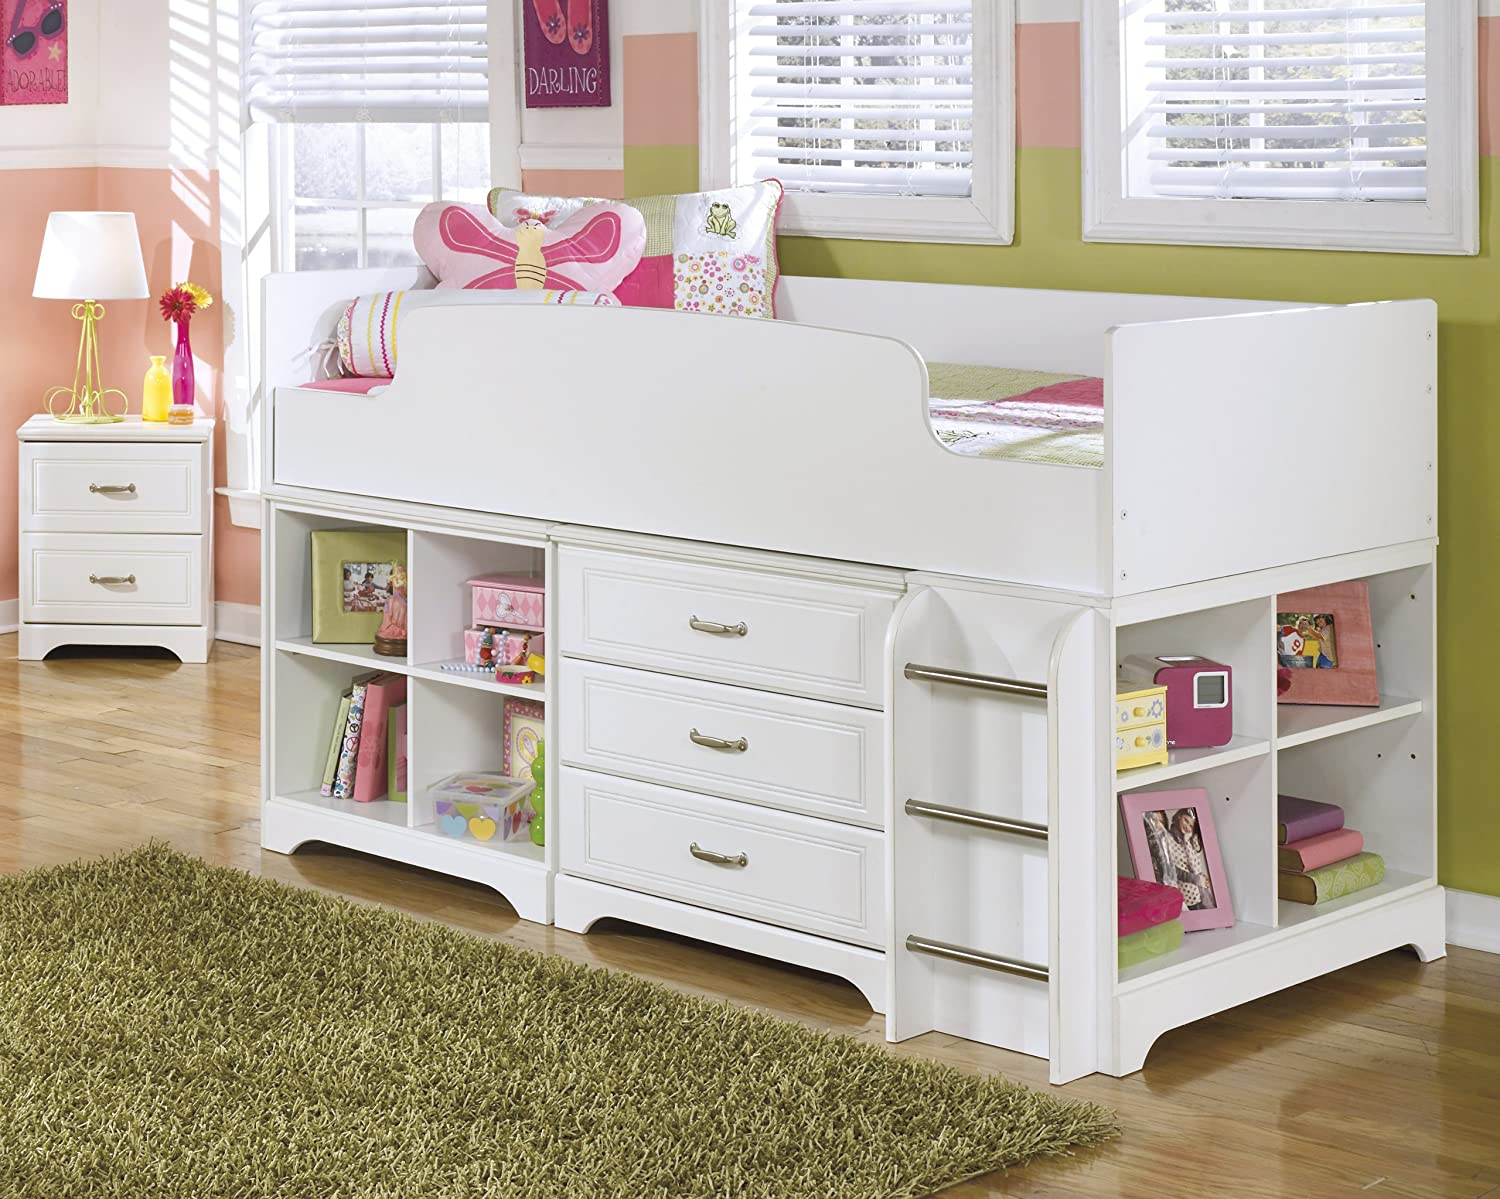 cabin underbed with bed storage mattresses asp pine p drawers sprung white bedframe single captain finish x captains beds wooden solid kids